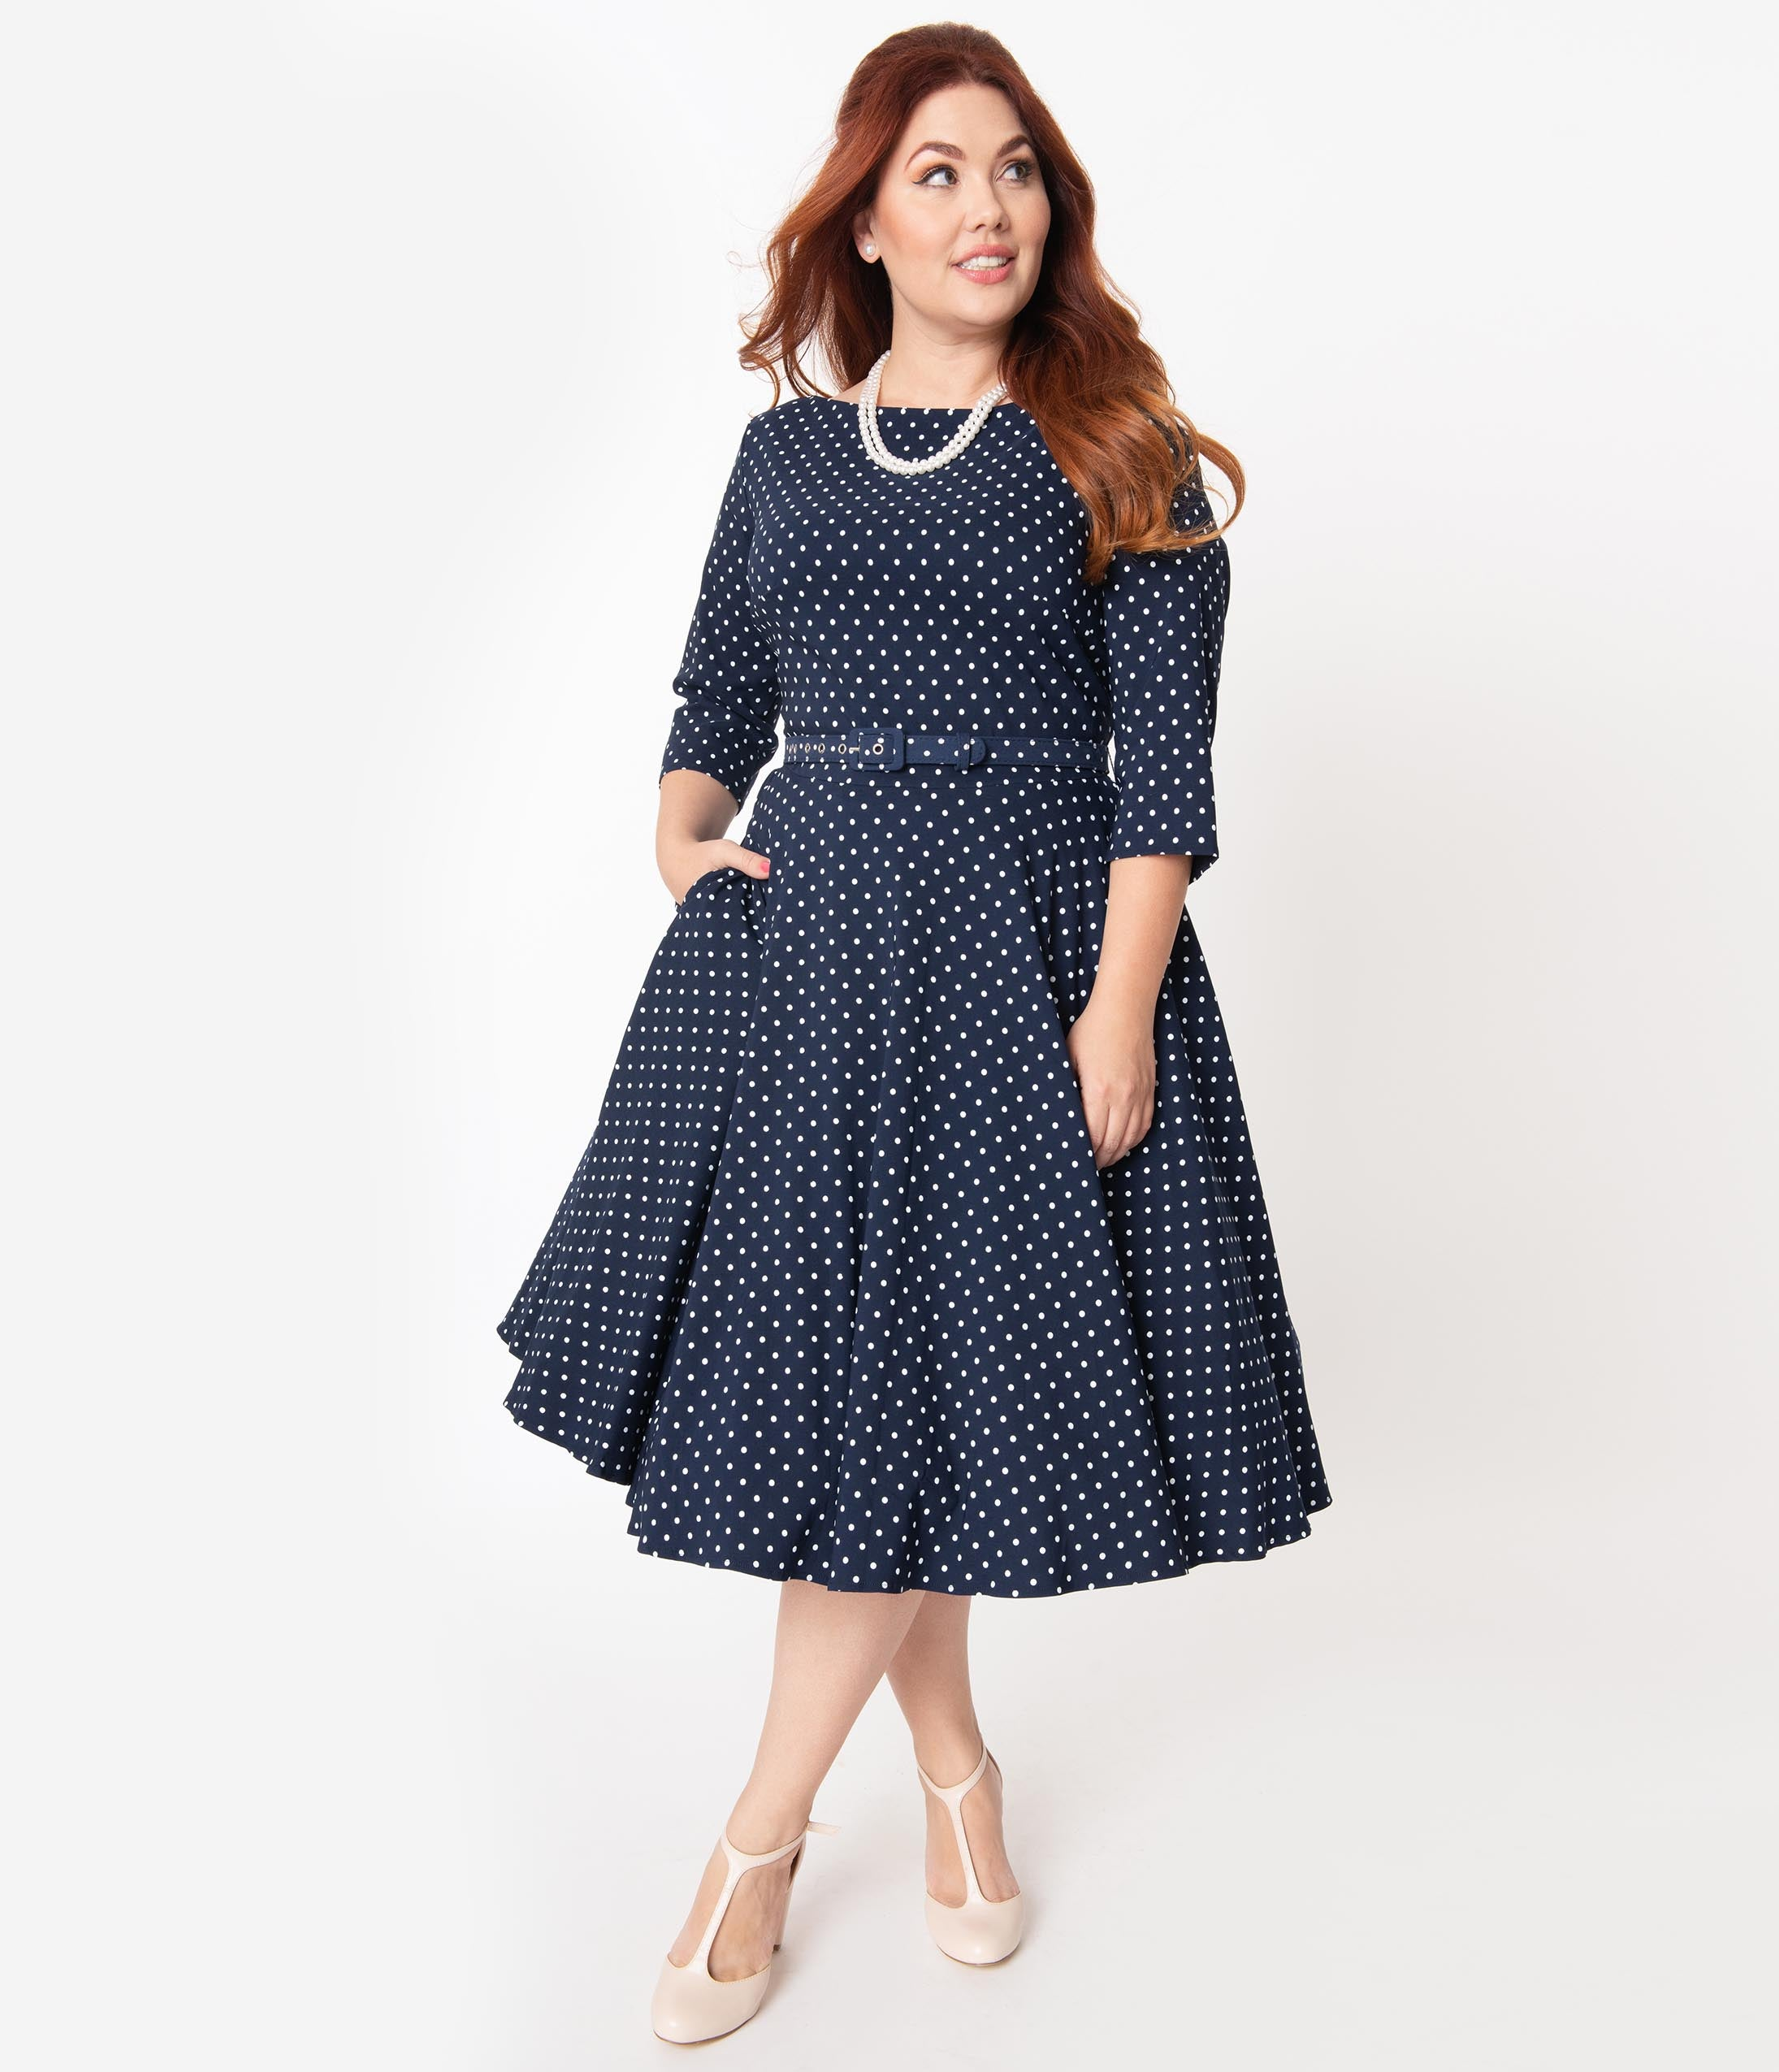 60s 70s Plus Size Dresses, Clothing, Costumes Unique Vintage Plus Size 1950S Navy  White Pin Dot Devon Swing Dress $88.00 AT vintagedancer.com